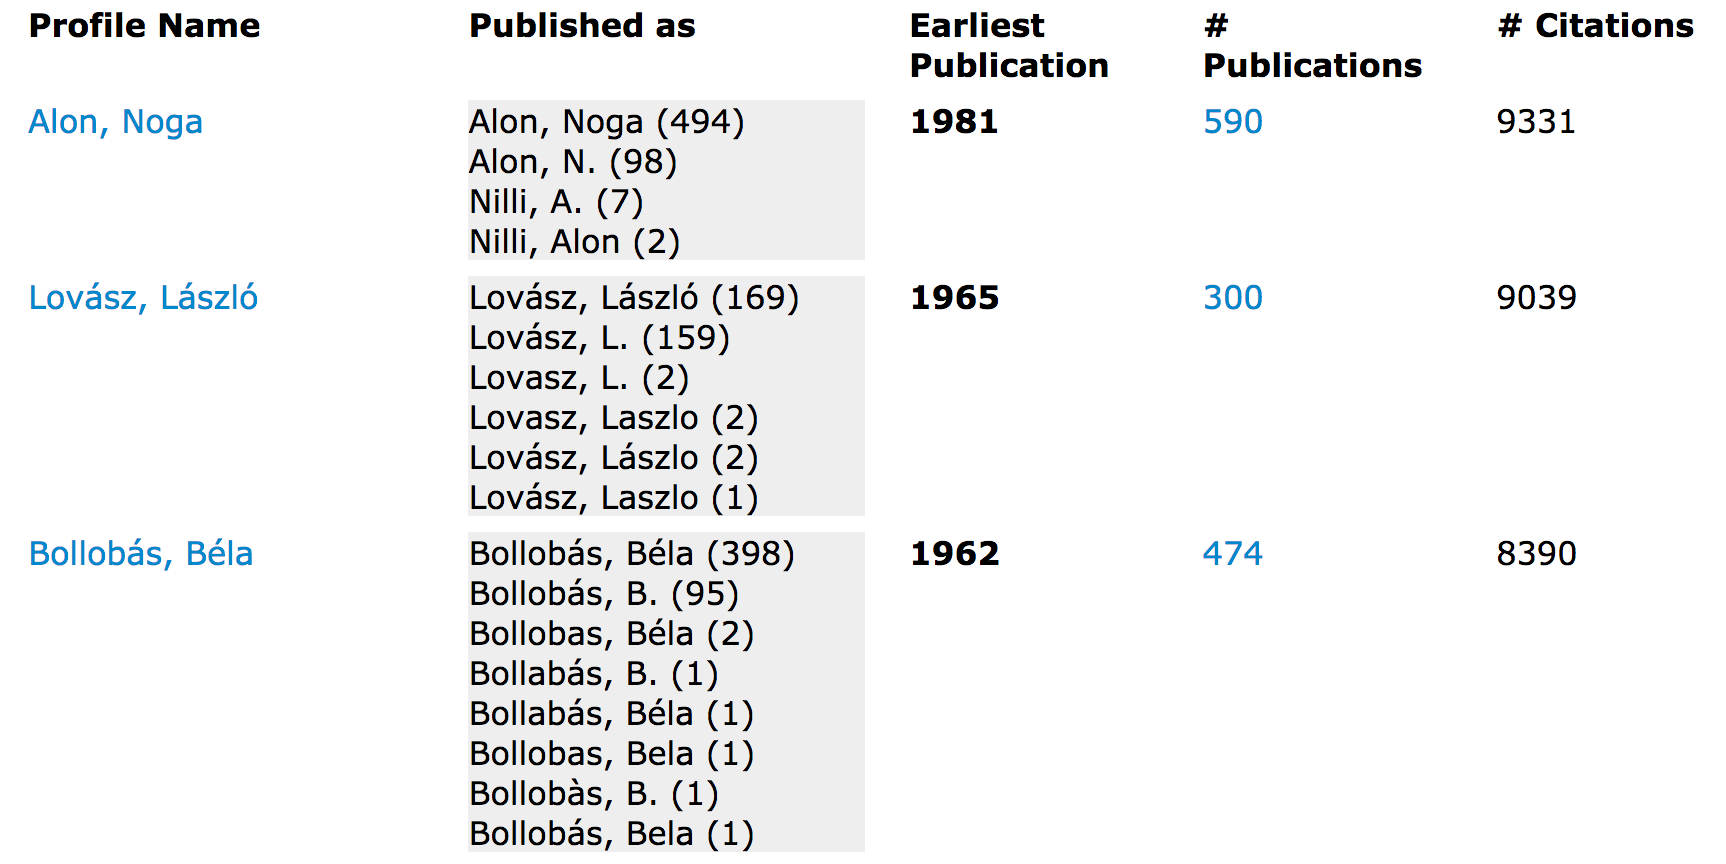 Co-Author list for Paul Erdos with columns labelled Profil Name, Published As, Earliest publication, # publications, and # citations. It was sorted by # of citations and the authors listed are Alon, Noga, Lovasz, Laszlo, and Bollobas, Bella.